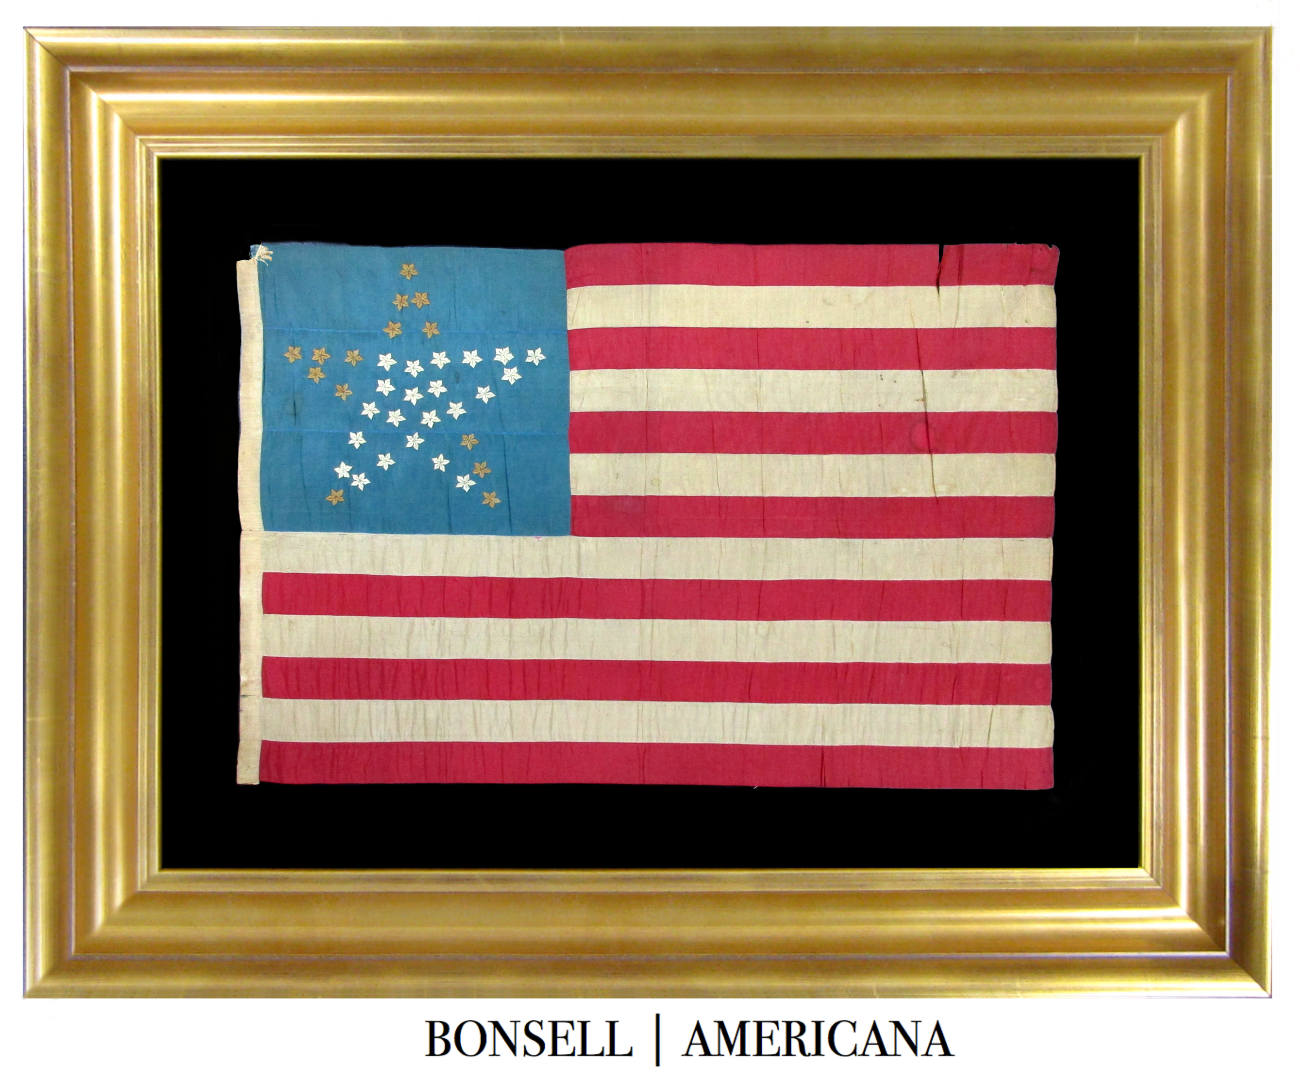 Handmade 36 Star Antique Flag with Great Star Pattern